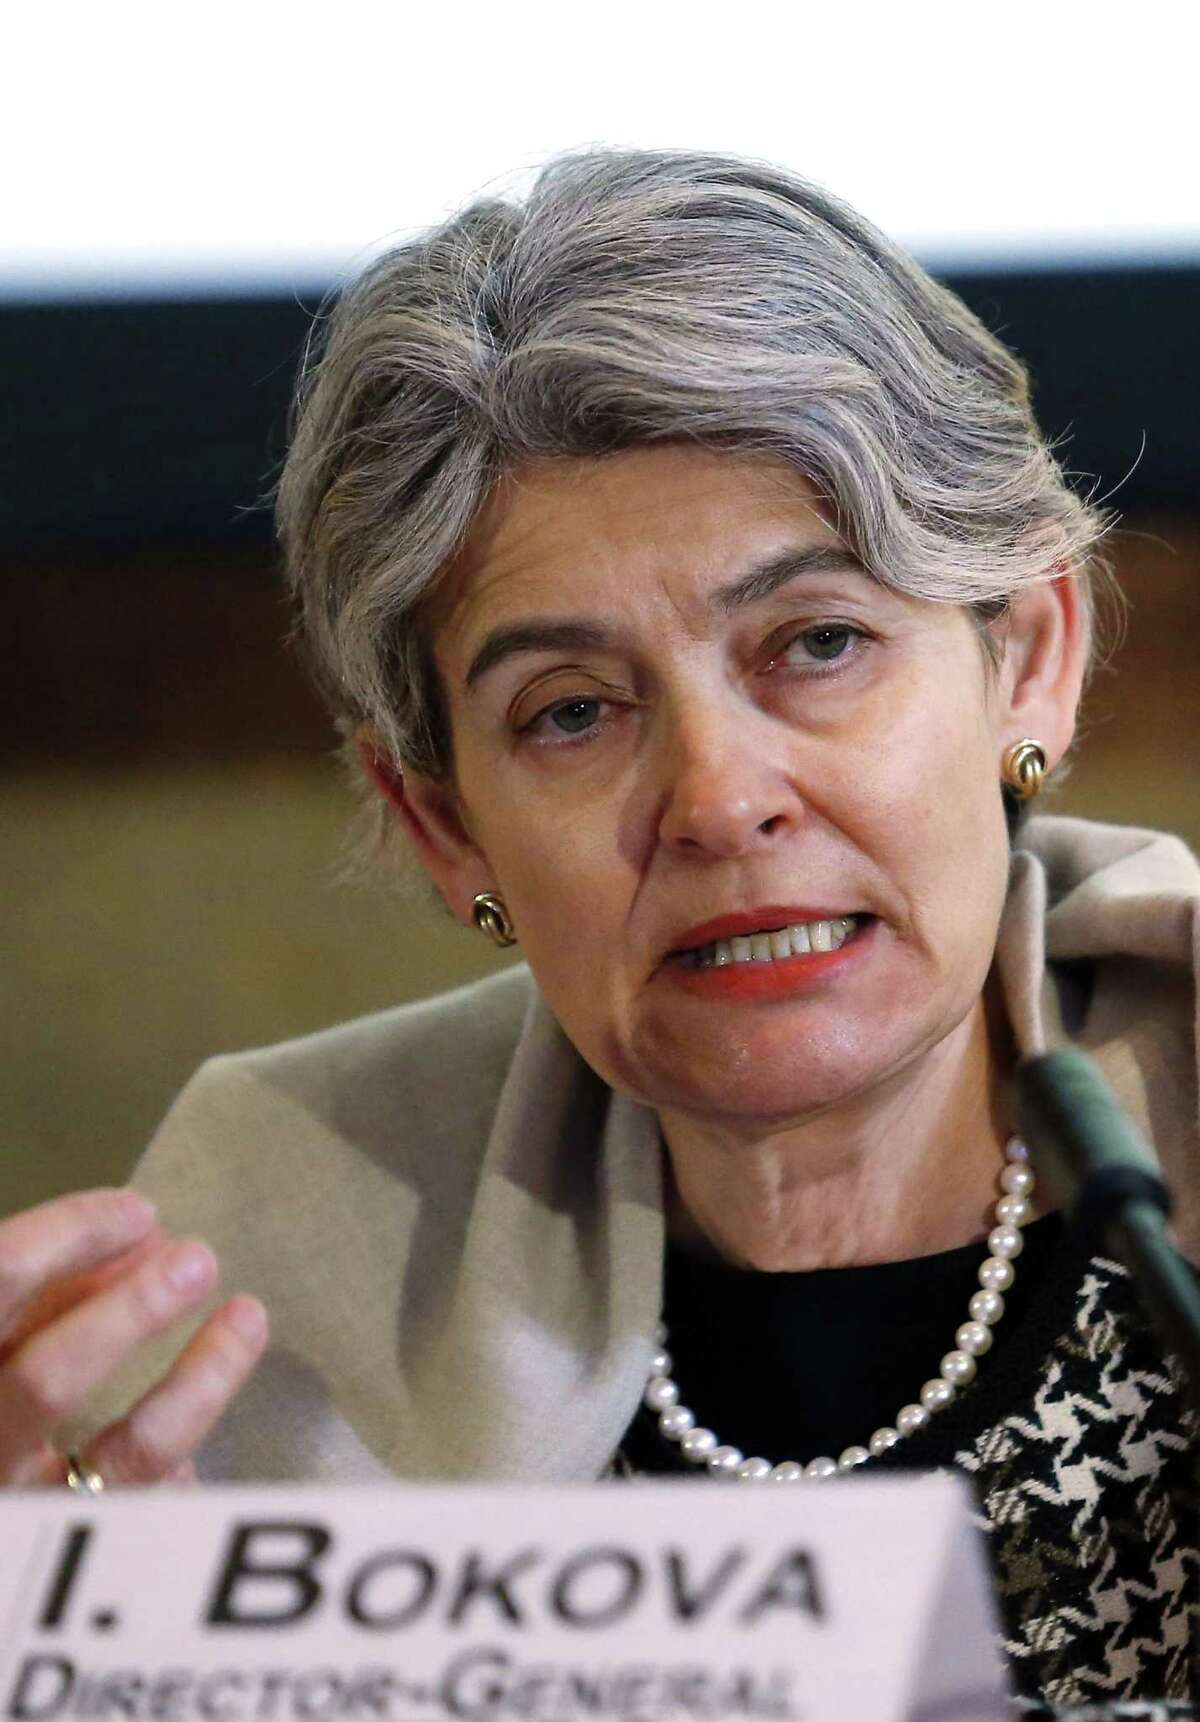 """Irina Bokova, Director General of the U.N.'s culture agency UNESCO, speaks during a press conference in Paris, France, Friday, Feb. 27, 2015. Bokova asked for an emergency meeting of the U.N. Security Council to be convened """"on the protection of Iraq's cultural heritage as an integral element for the country's security"""" after extremists released a video thought to show men using sledgehammers to smash ancient Mesopotamian statues and other artifacts in Iraq's northern city of Mosul.(AP Photo/Jacques Brinon)"""